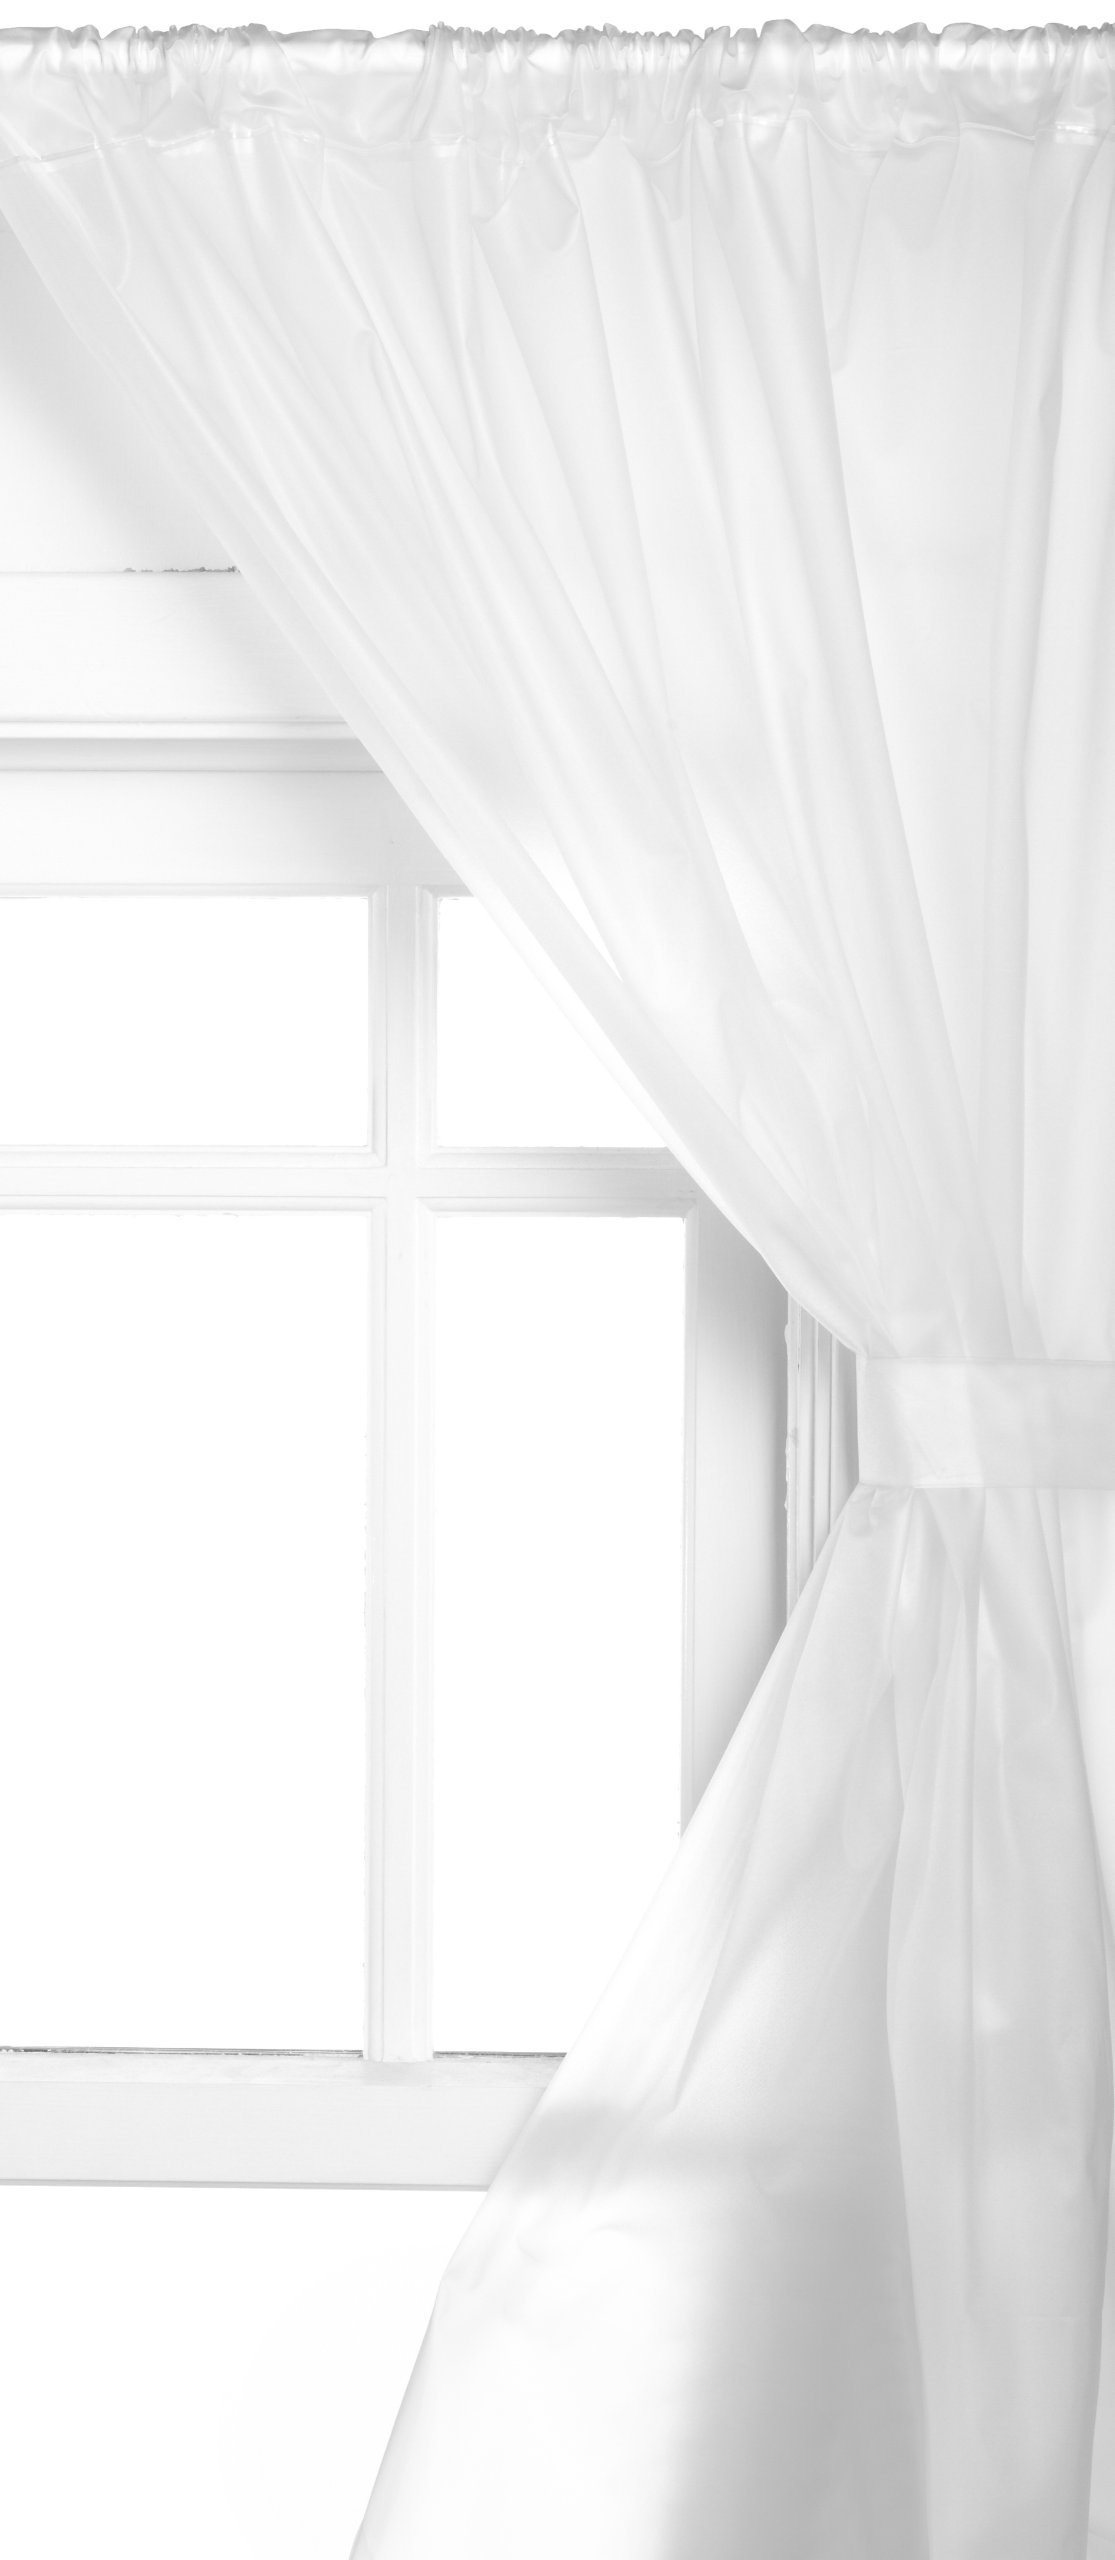 Carnation Home Fashions Vinyl Bathroom Window Curtain, Frosted Clear - 100Percent PVC material Wipes clean with a damp sponge Comes complete with two panels and two tiebacks - living-room-soft-furnishings, living-room, draperies-curtains-shades - 61LcWOiHyZL -